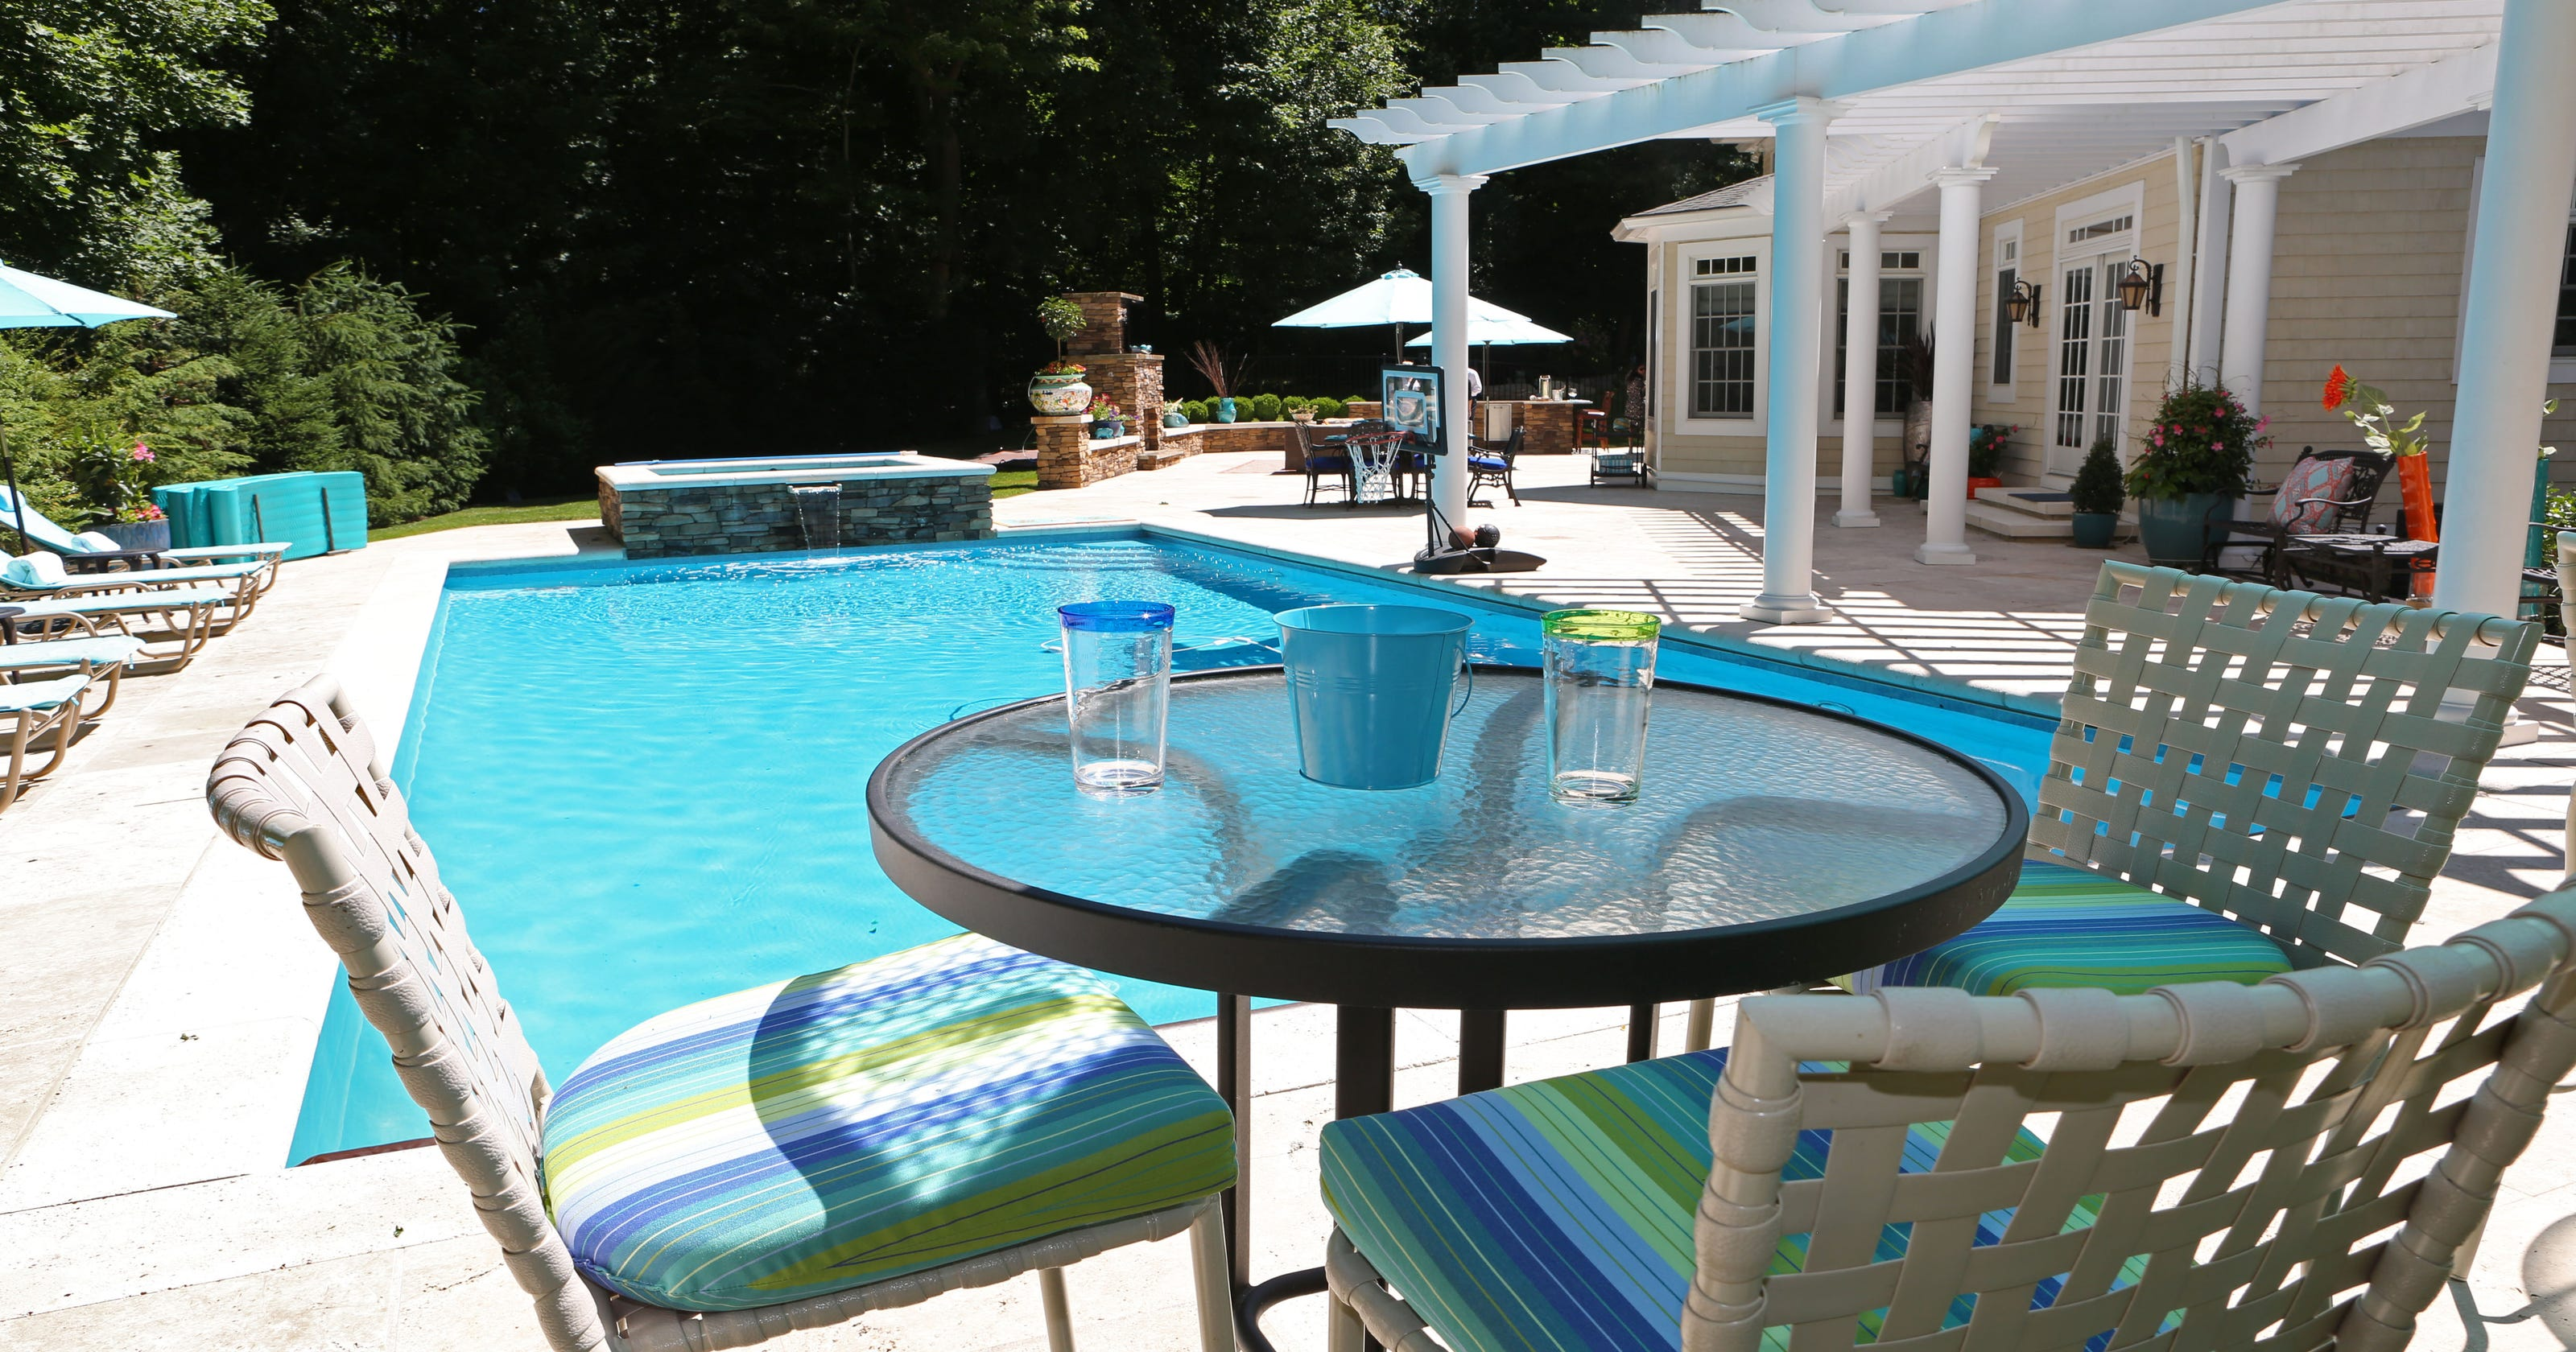 Outdoor rooms: The latest Westchester design trend